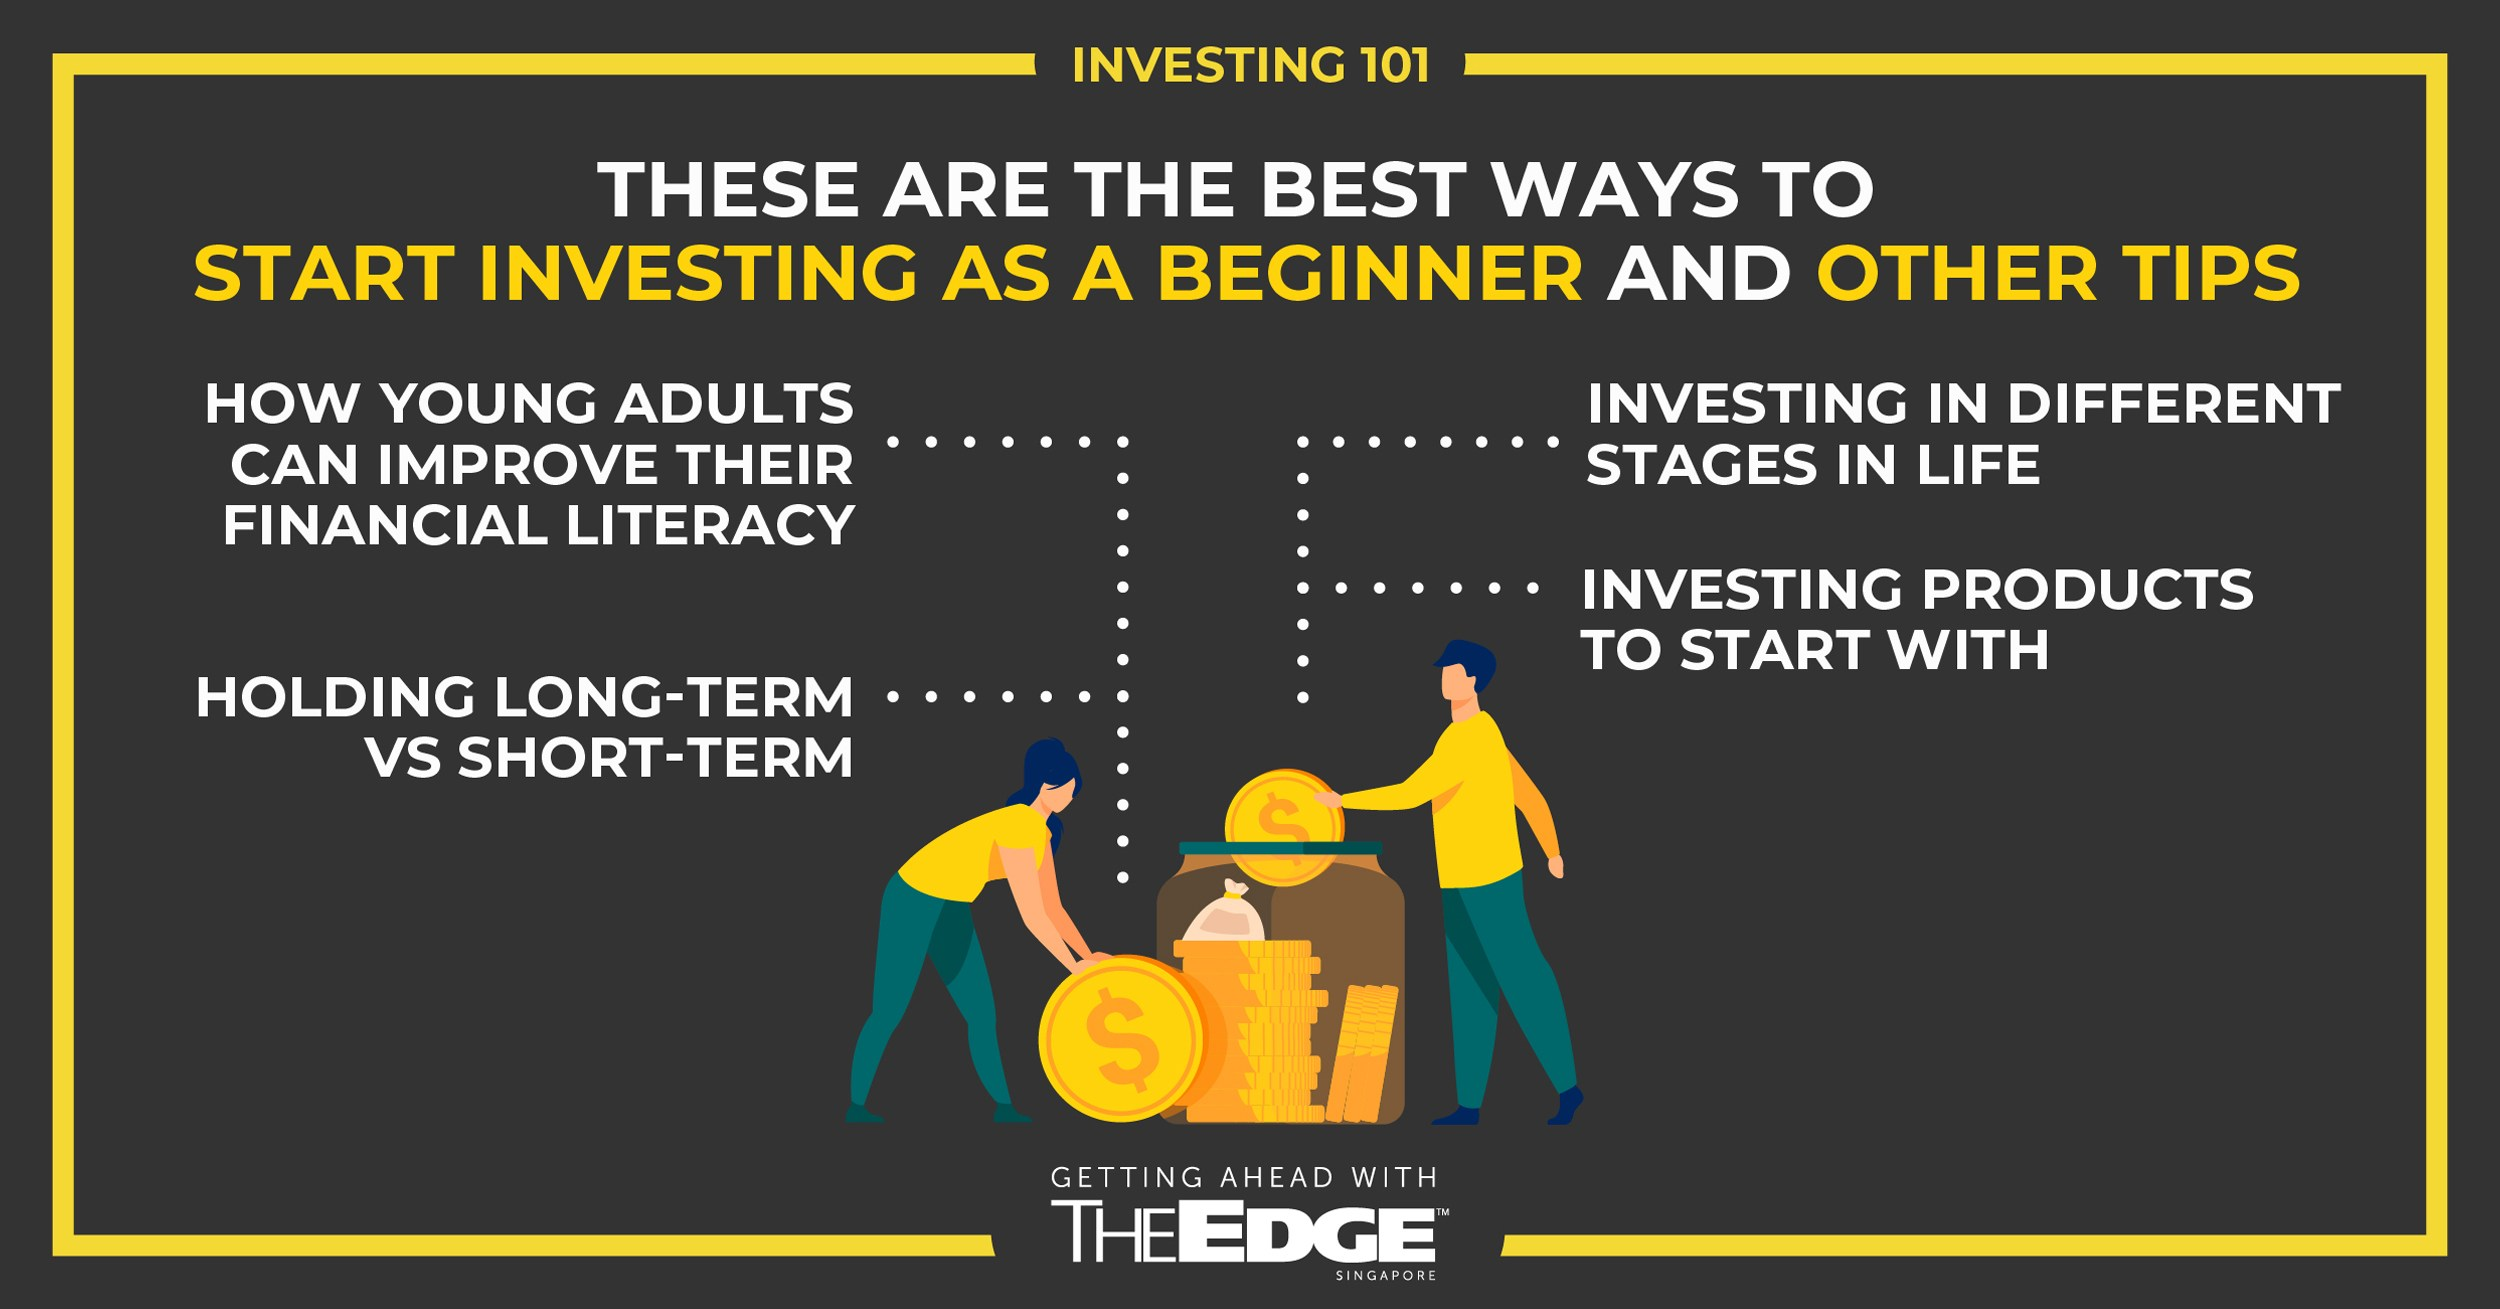 The best ways to start investing as a beginner, according to a financial consultant